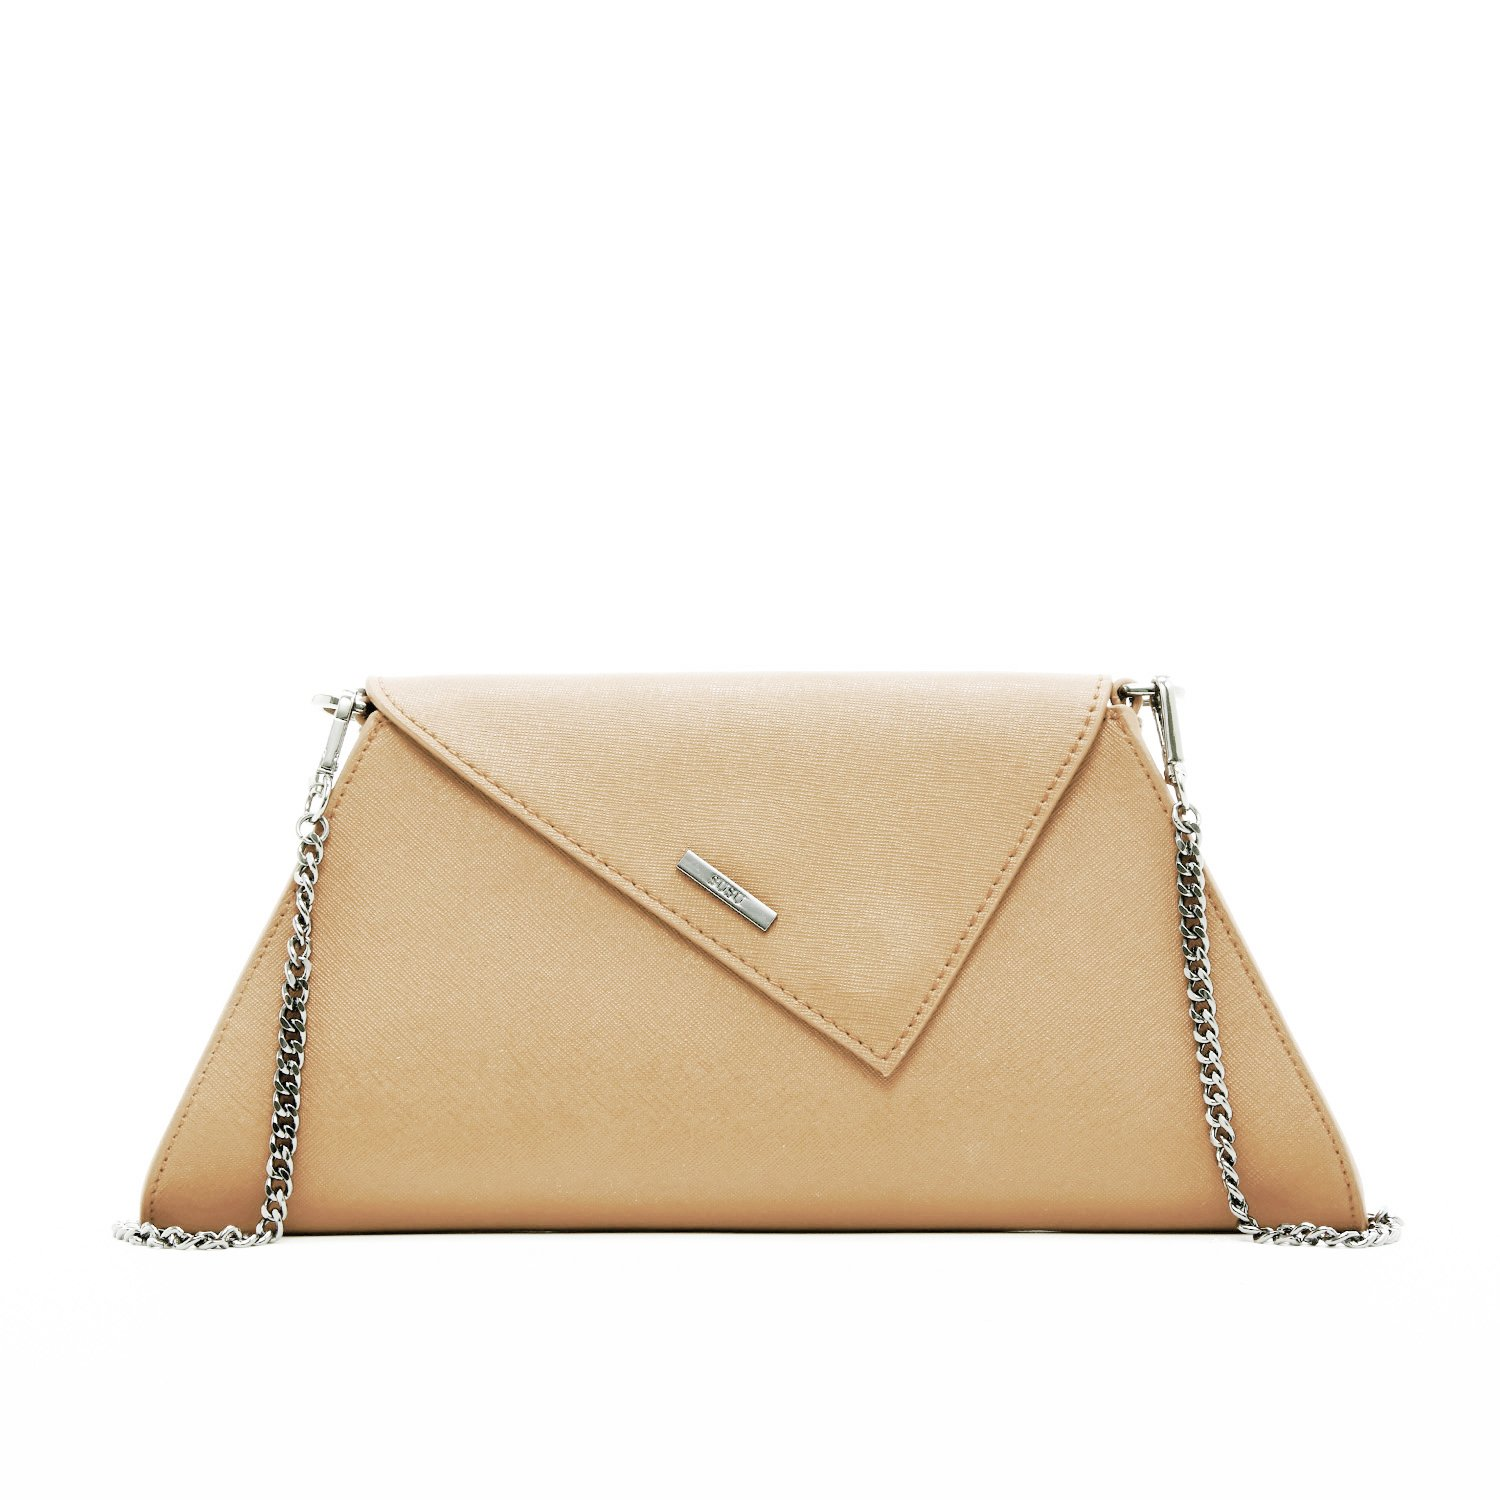 Nude Clutch Purse For Women - Taupe Clutches and Purses Tan Evening Bags Womens Beige Saffiano Leather Cream Neutral Envelope Designer Handbags Cute Crossbody Chain Strap Champagne Chic It Bag